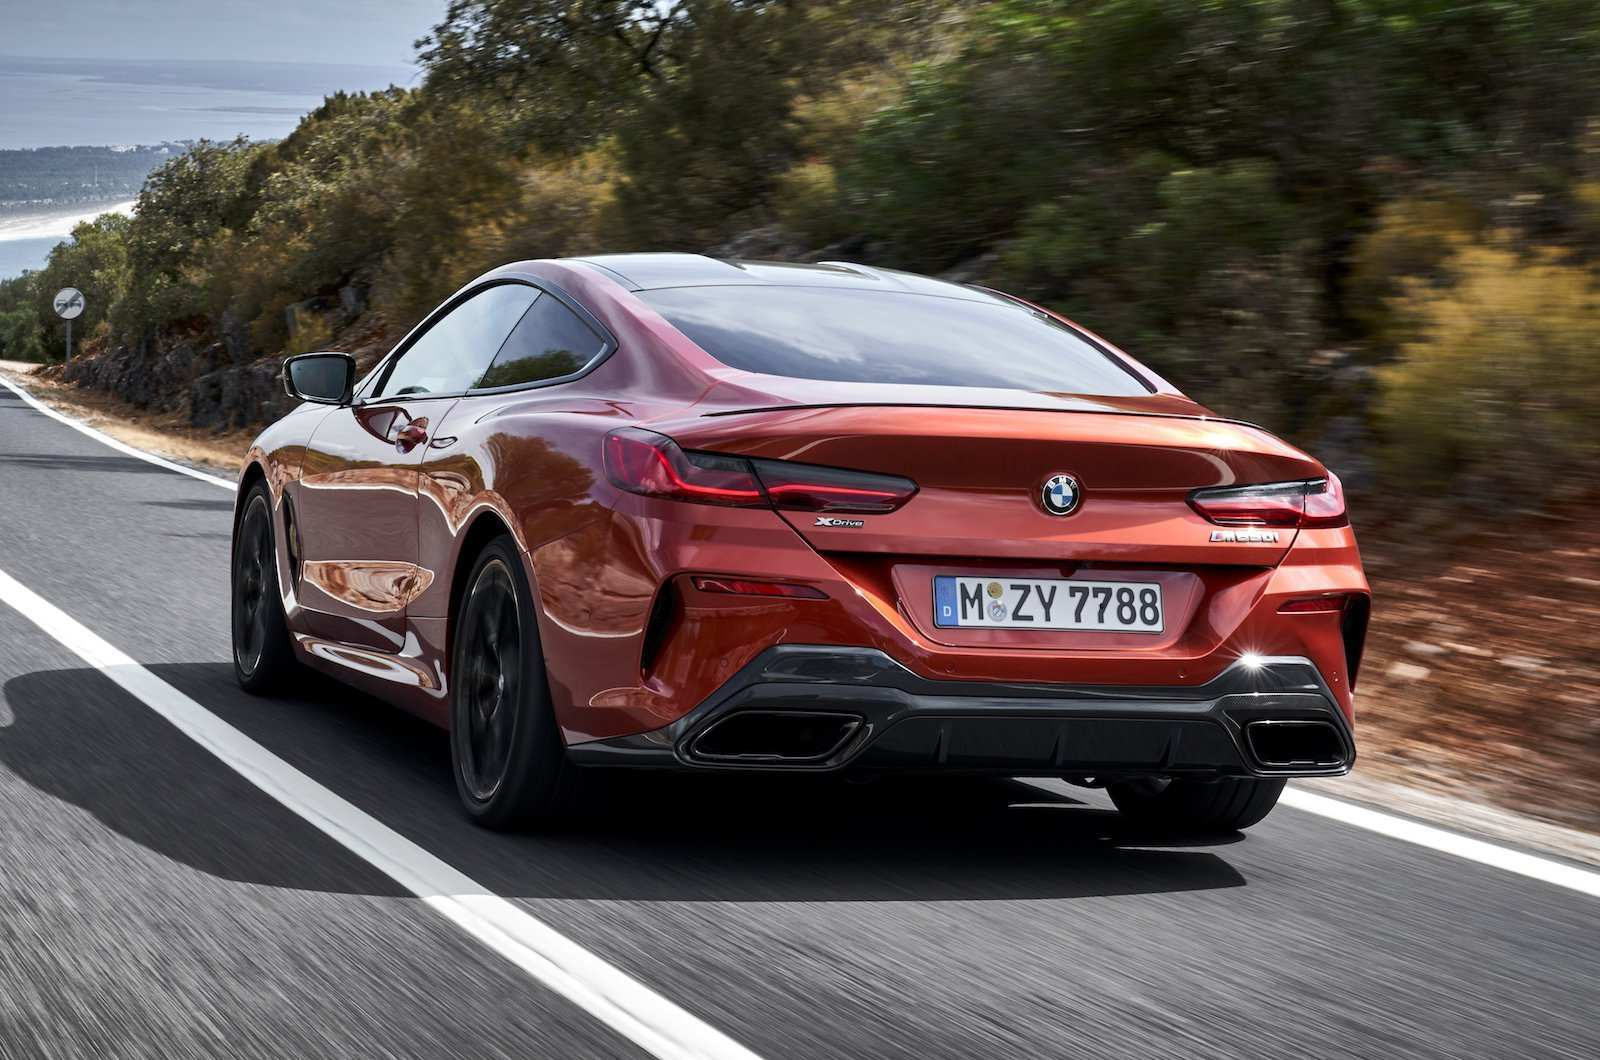 27 Great Bmw 8 2019 Concept with Bmw 8 2019